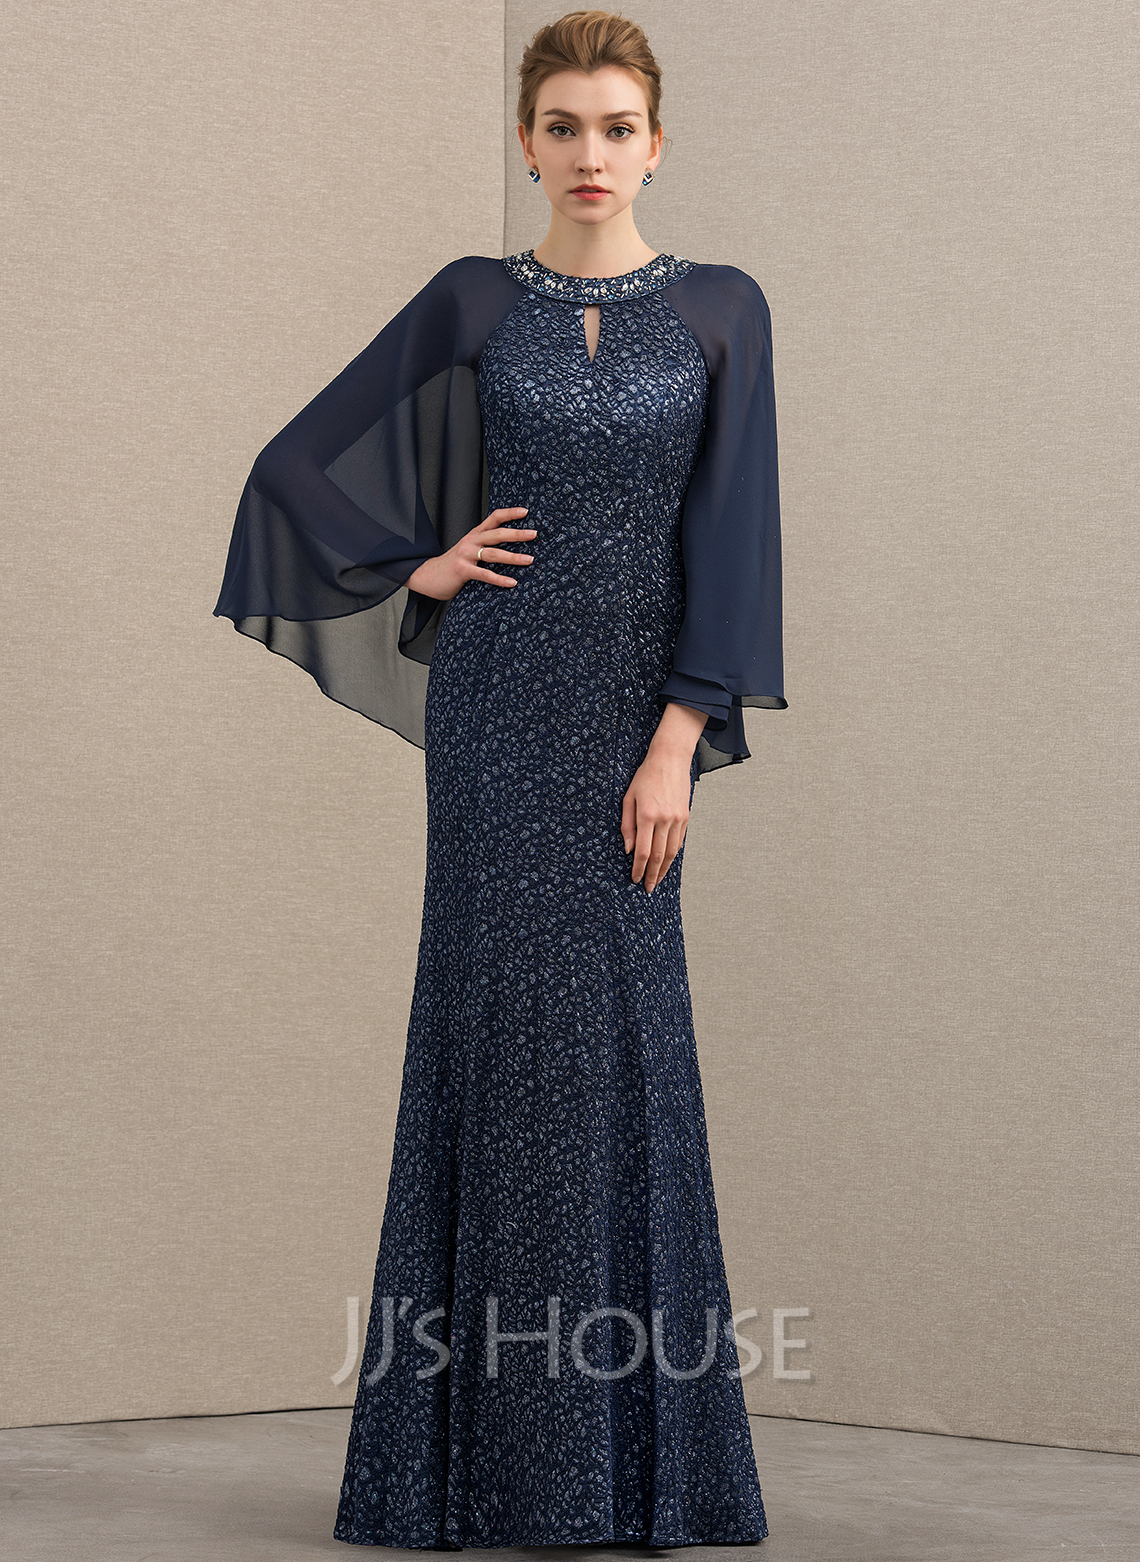 Trumpet/Mermaid Scoop Neck Floor-Length Chiffon Lace Mother of the Bride Dress With Beading Sequins